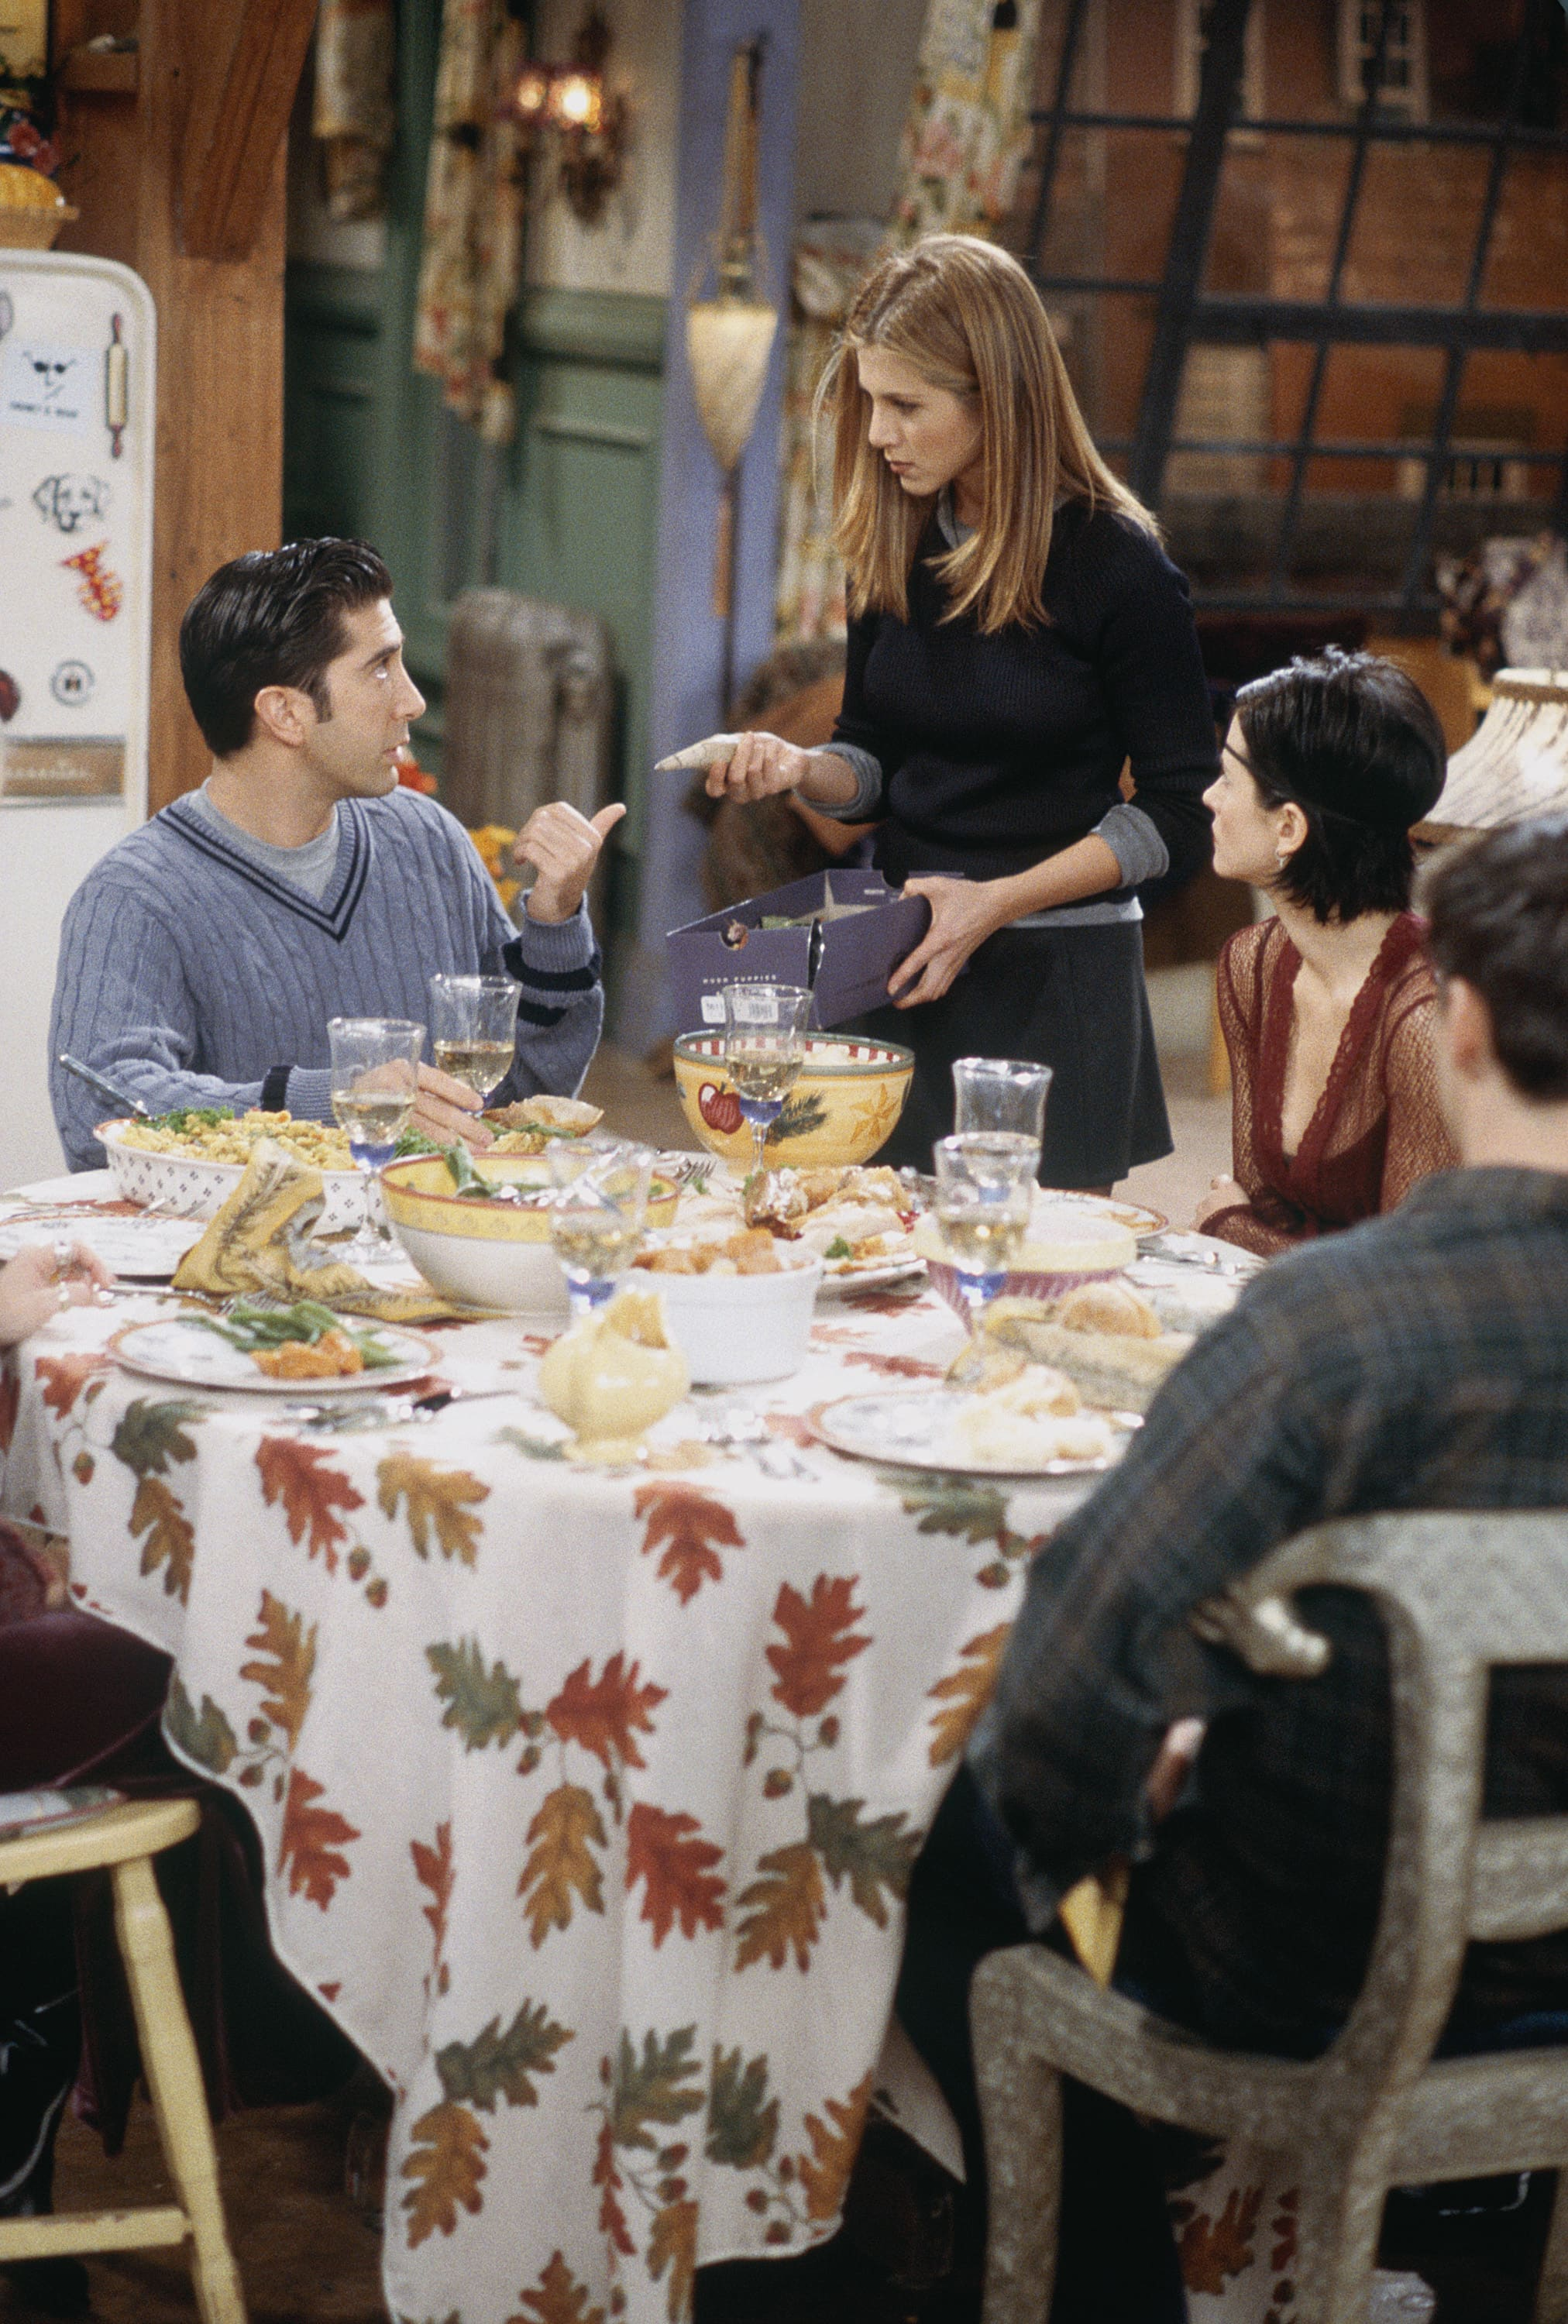 """FRIENDS -- """"The One with Chandler in a Box"""" Episode 8 -- Pictured: (front, l-r) Lisa Kudrow as Phoebe Buffay, Courteney Cox as Monica Geller, Jennifer Aniston as Rachel Green, (back) Matt LeBlanc as Joey Tribbiani  (Photo by Paul Drinkwater/NBCU Photo Bank/NBCUniversal via Getty Images via Getty Images)"""